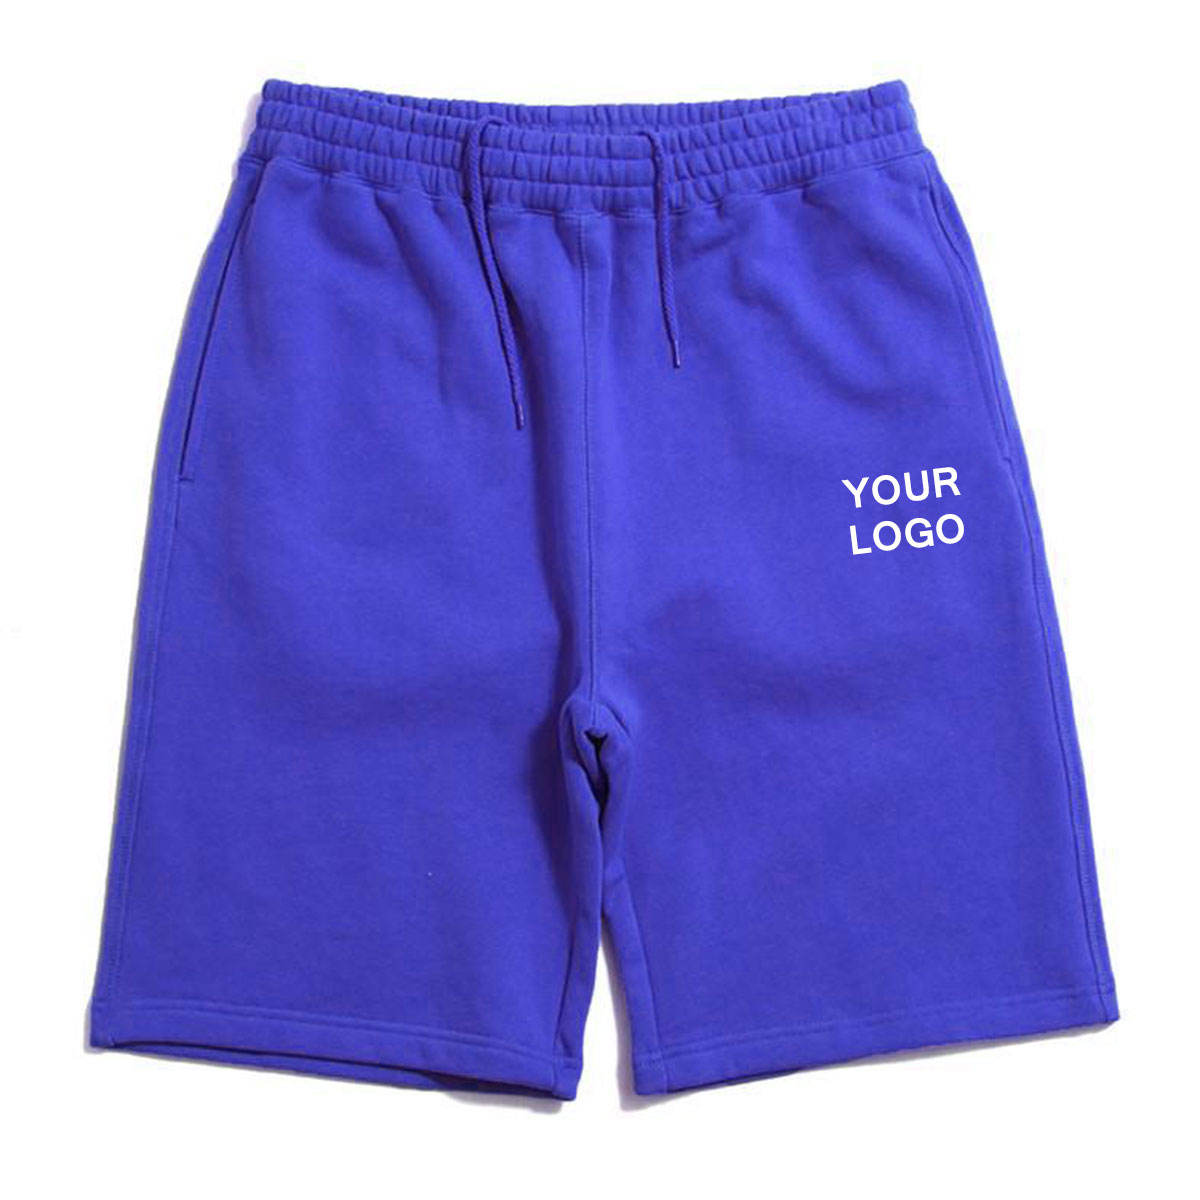 High Quality Customized Cotton Workout Running Unisex Sweat Candy Shorts